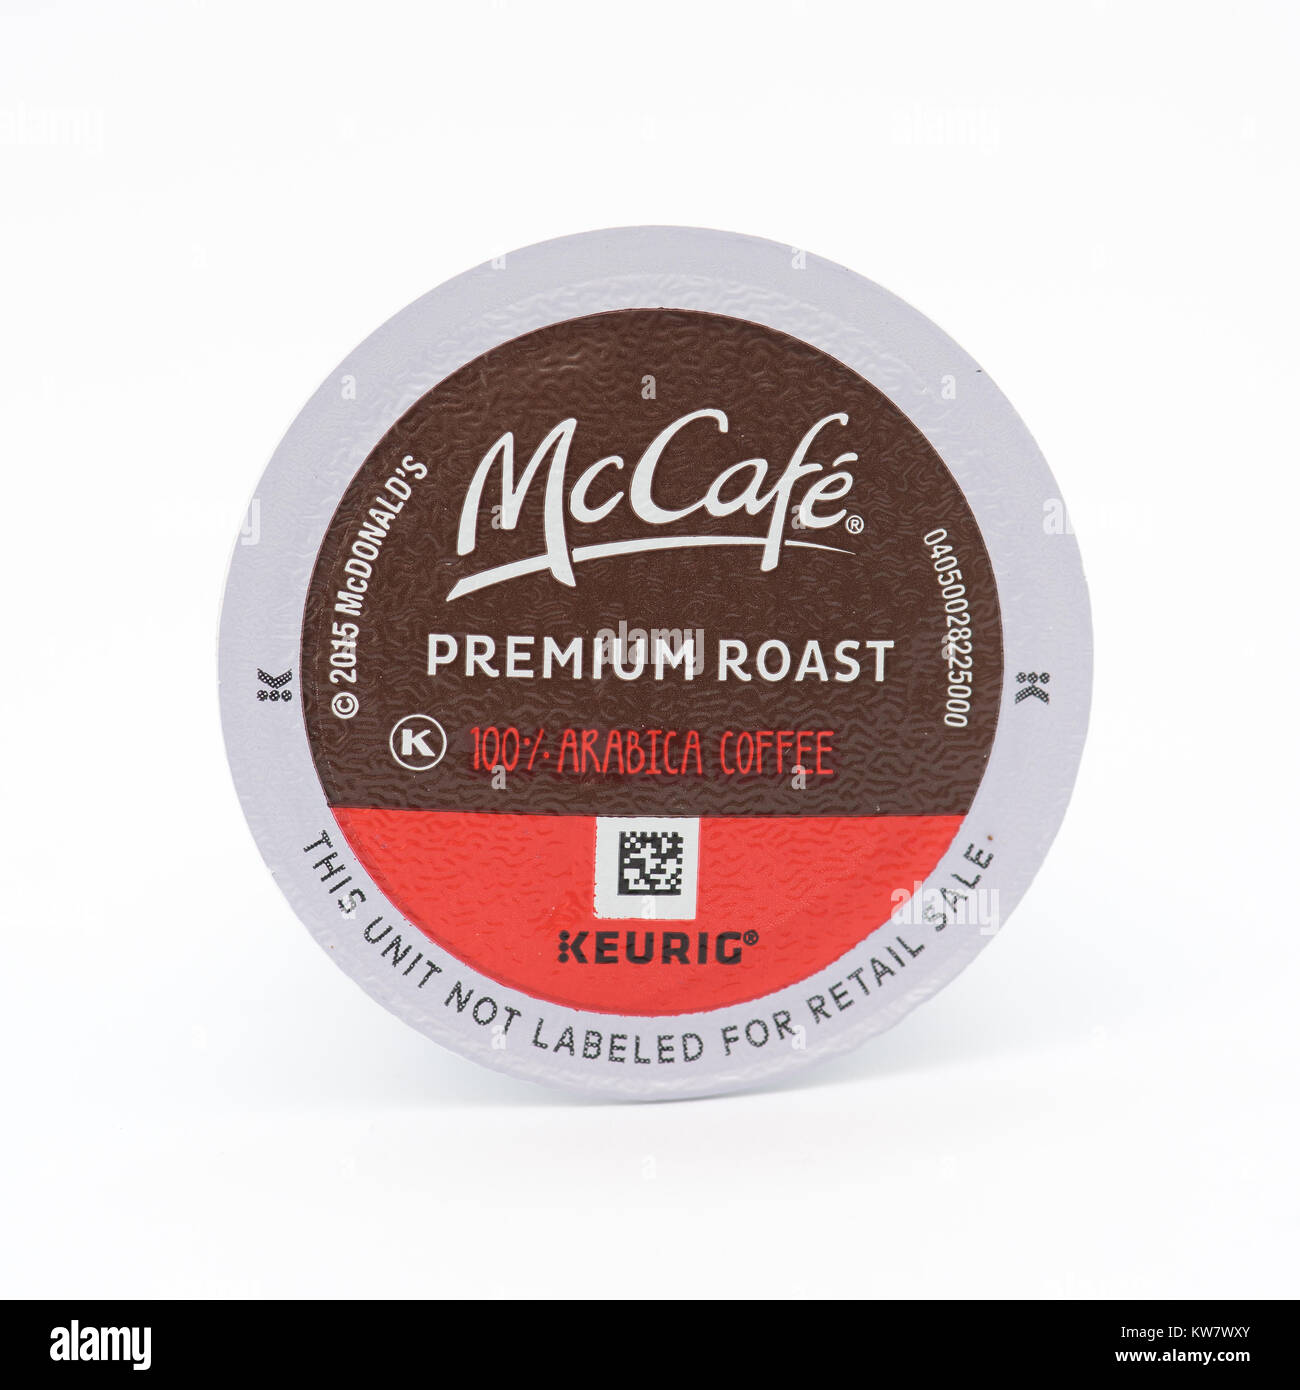 A single serving K-CUP pod of McDonald's McCafe smooth and balanced Arabica coffee for use in Keurig K-CUP brewers. - Stock Image